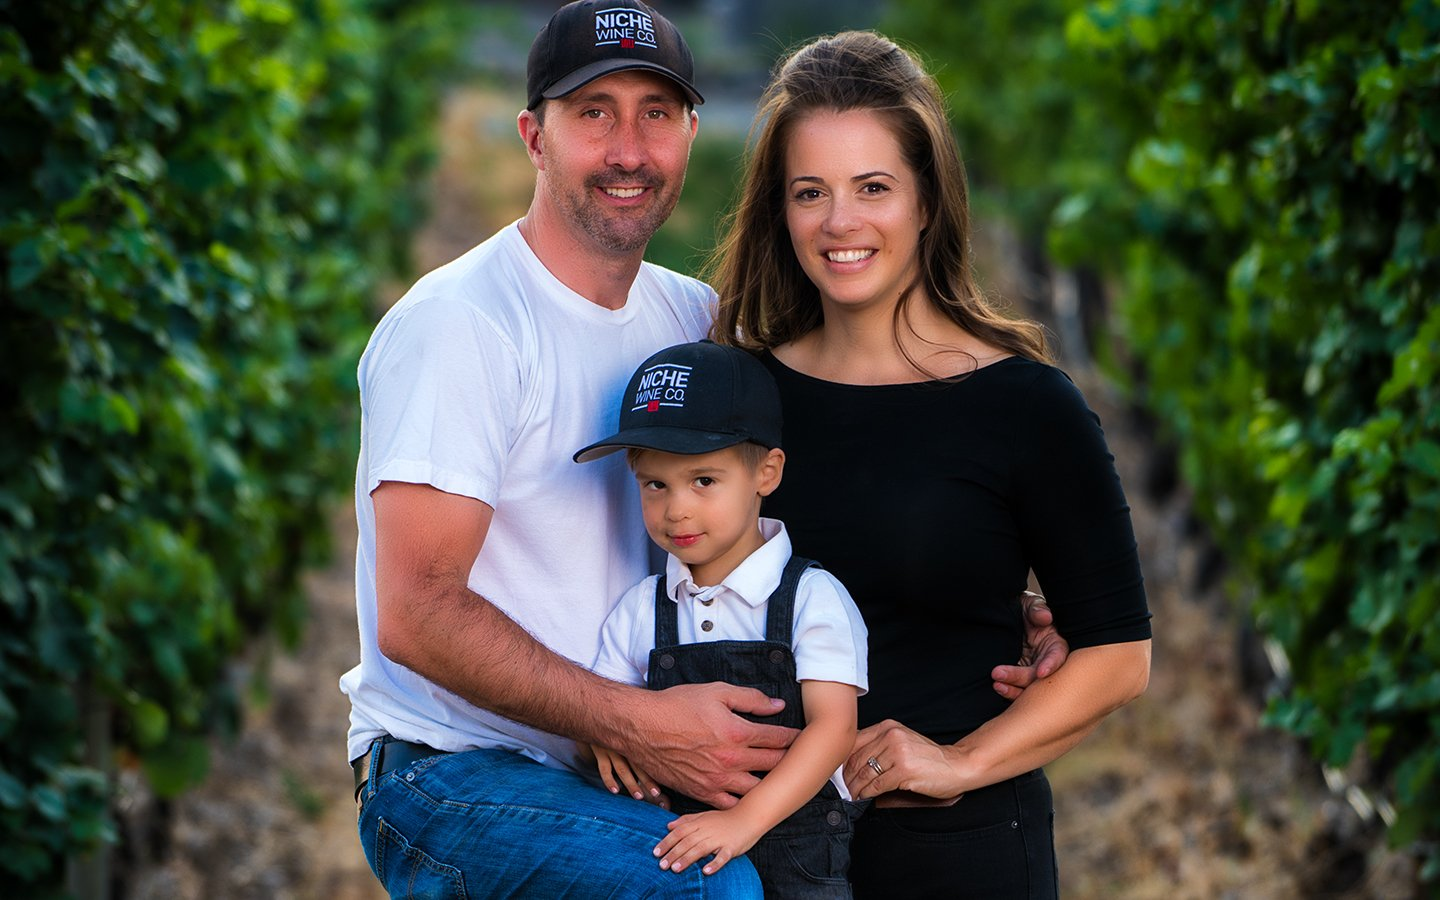 https://spatulamedia.ca/wp-content/uploads/2019/05/niche-winery-james-joanna-hugh.jpg